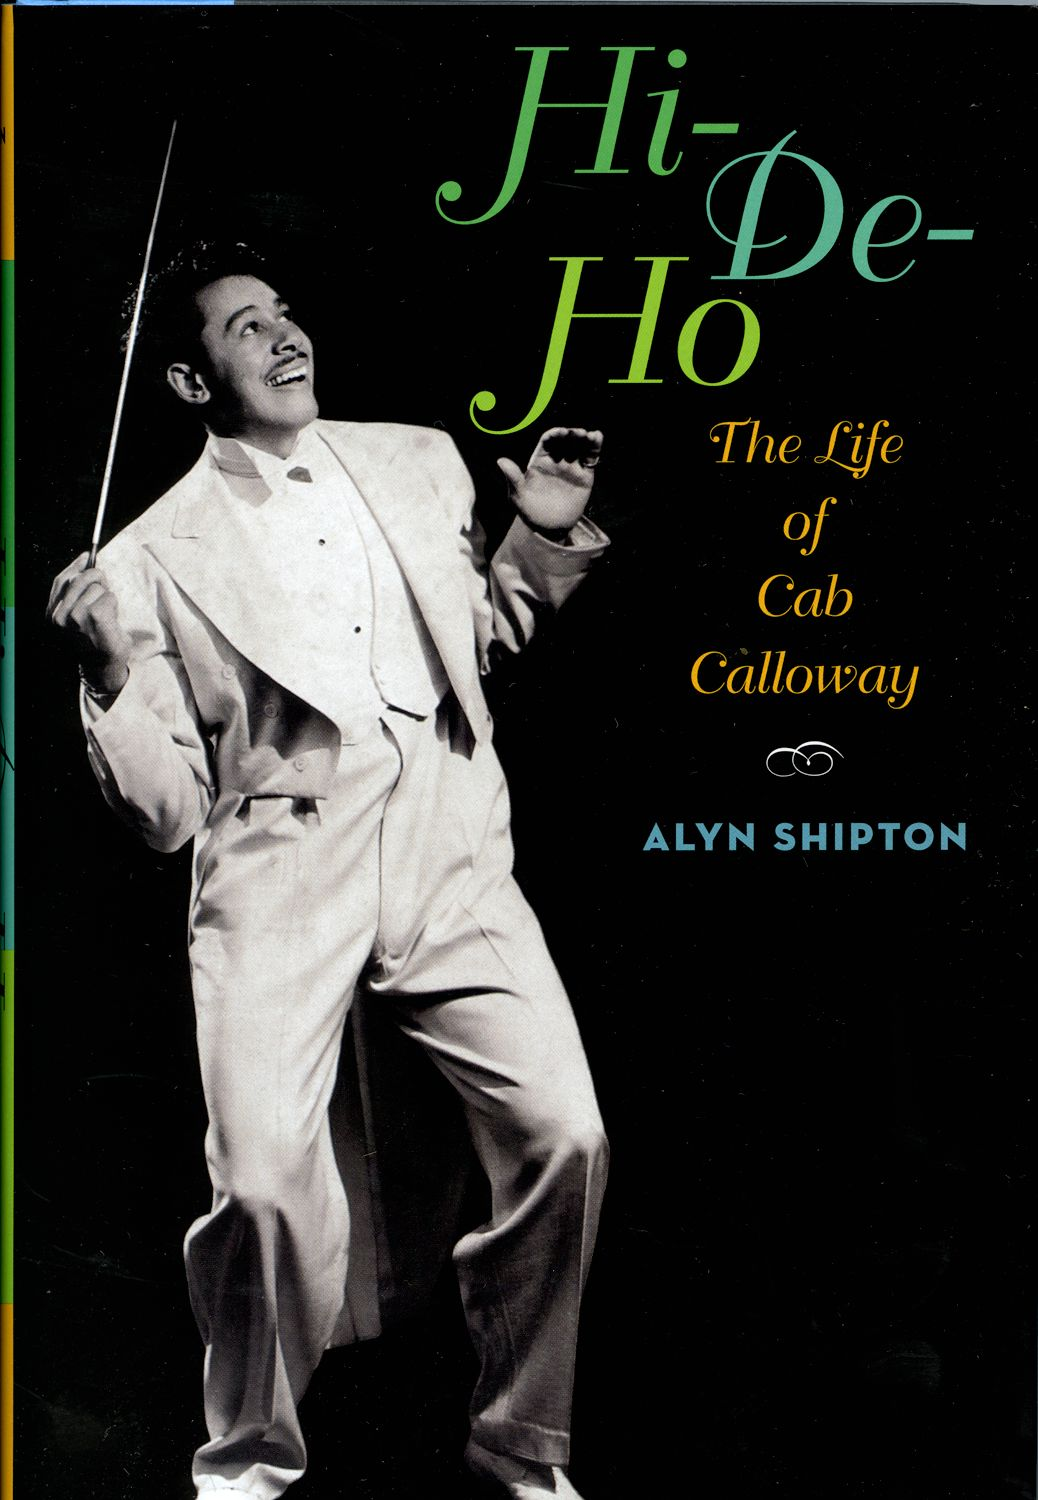 cab calloway is you is